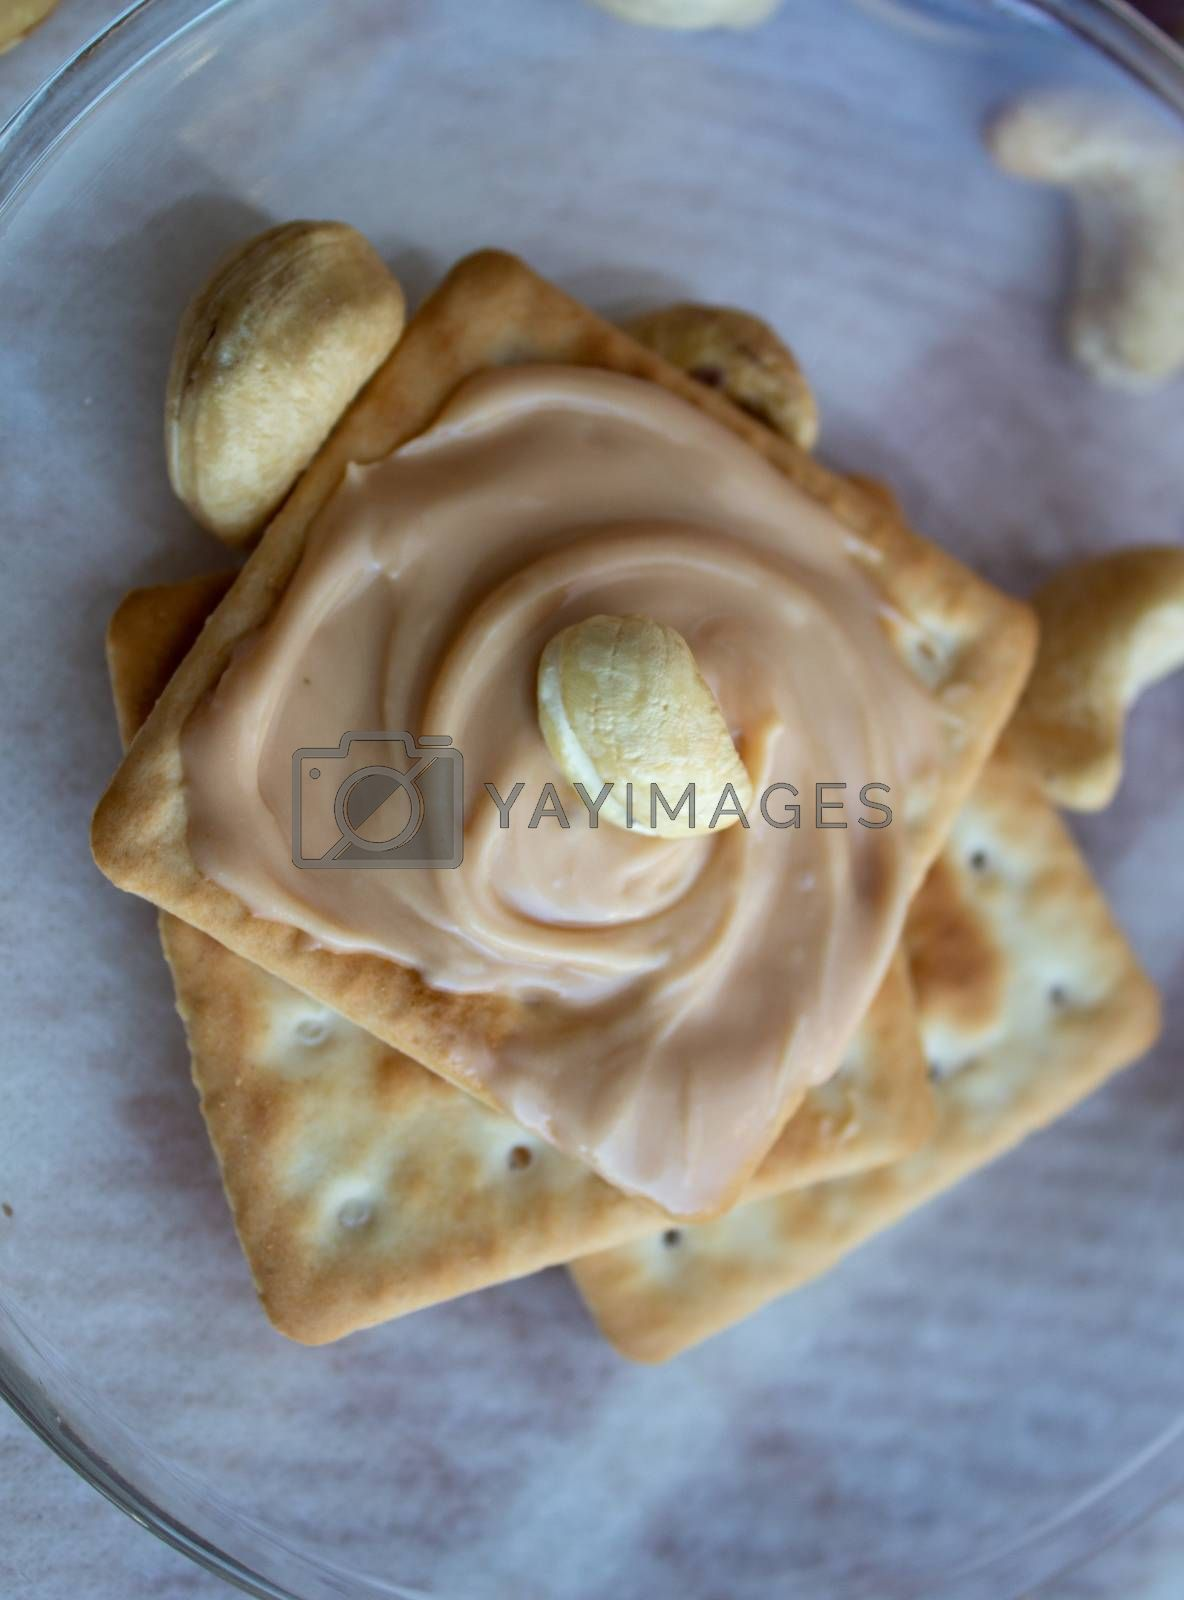 Delicious peanut butter on Cookies. Cookies for tea.